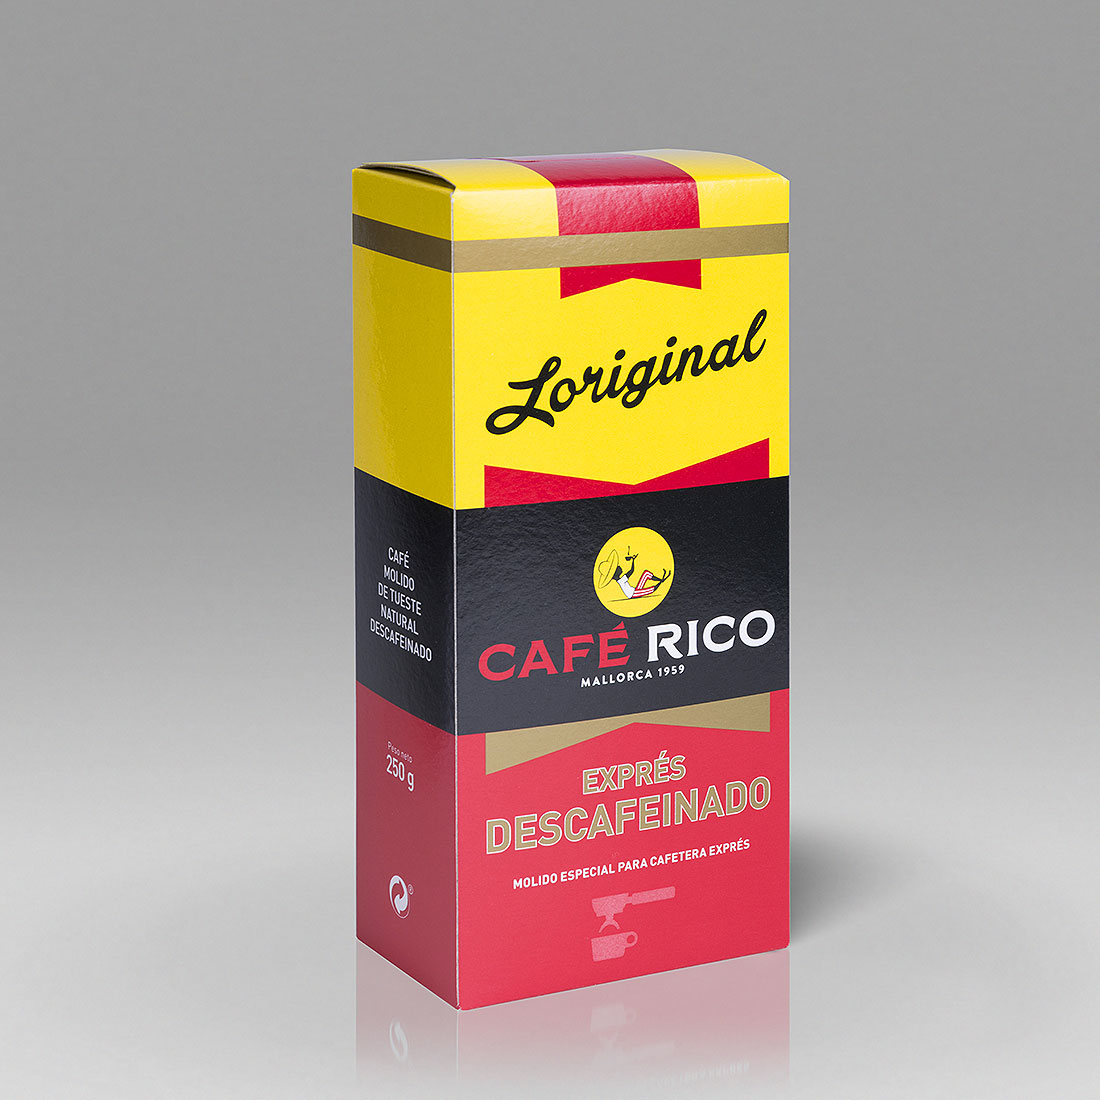 Cafe-Rico-Original-Expres-Decaffeinated